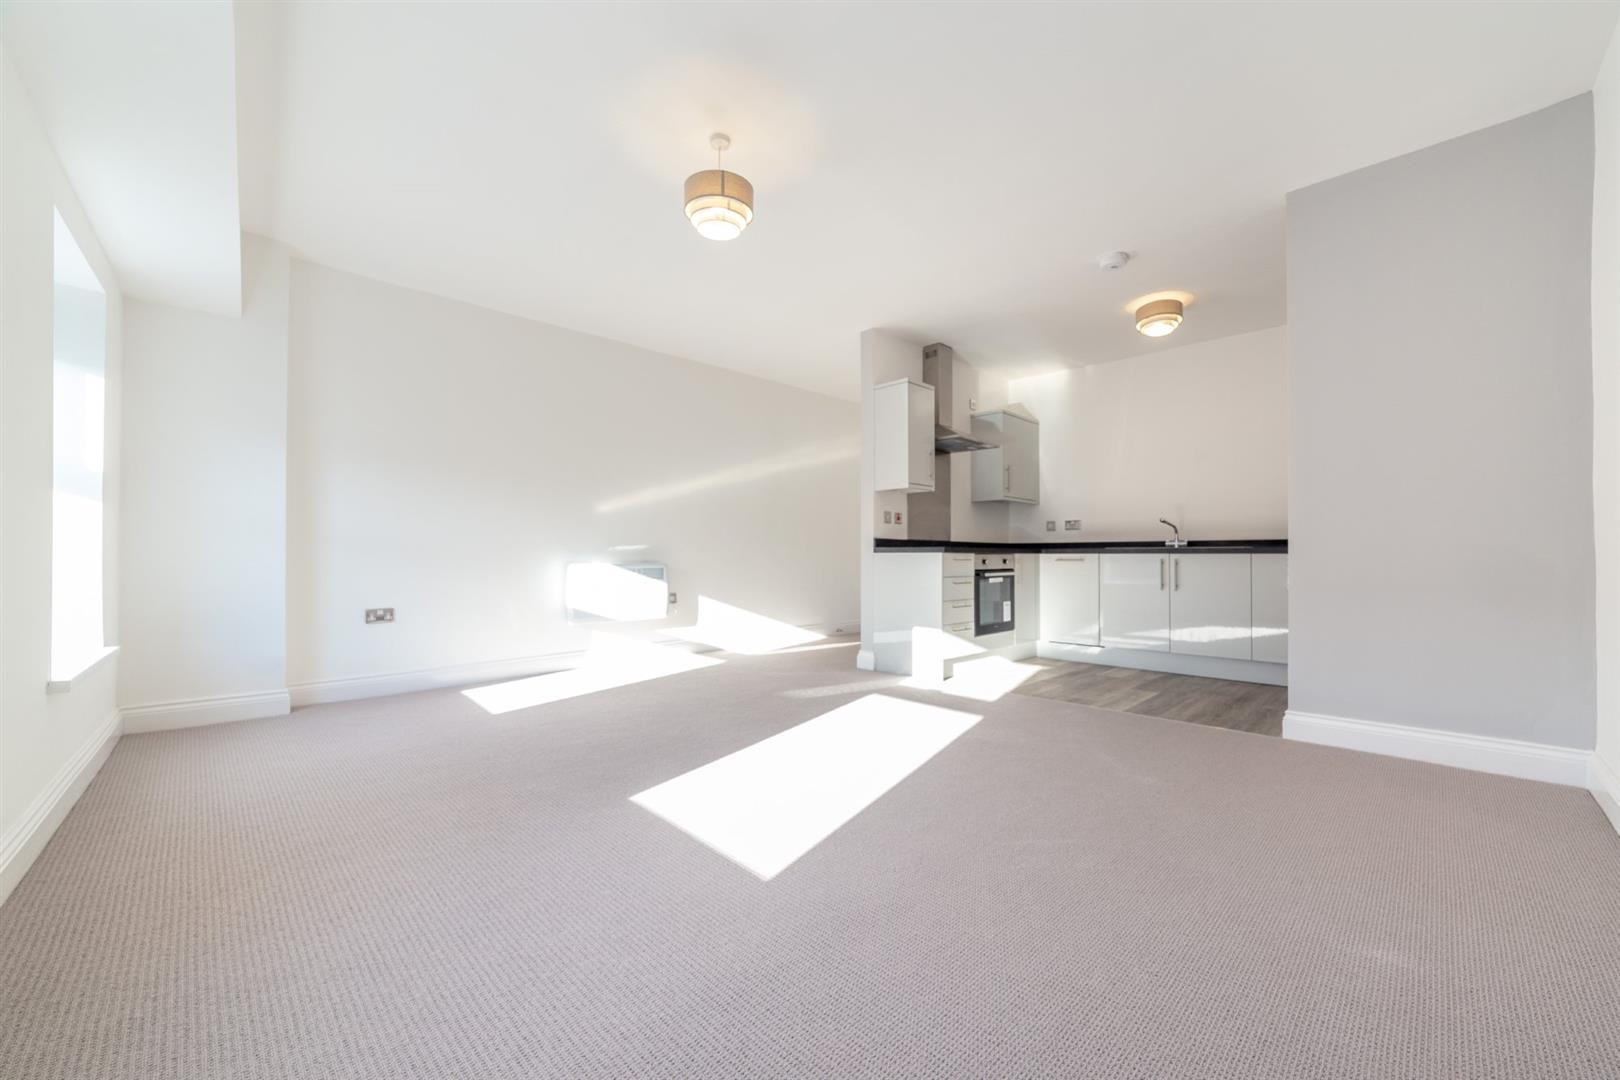 2 bed flat to rent in Morpeth, NE61 1NT  - Property Image 23